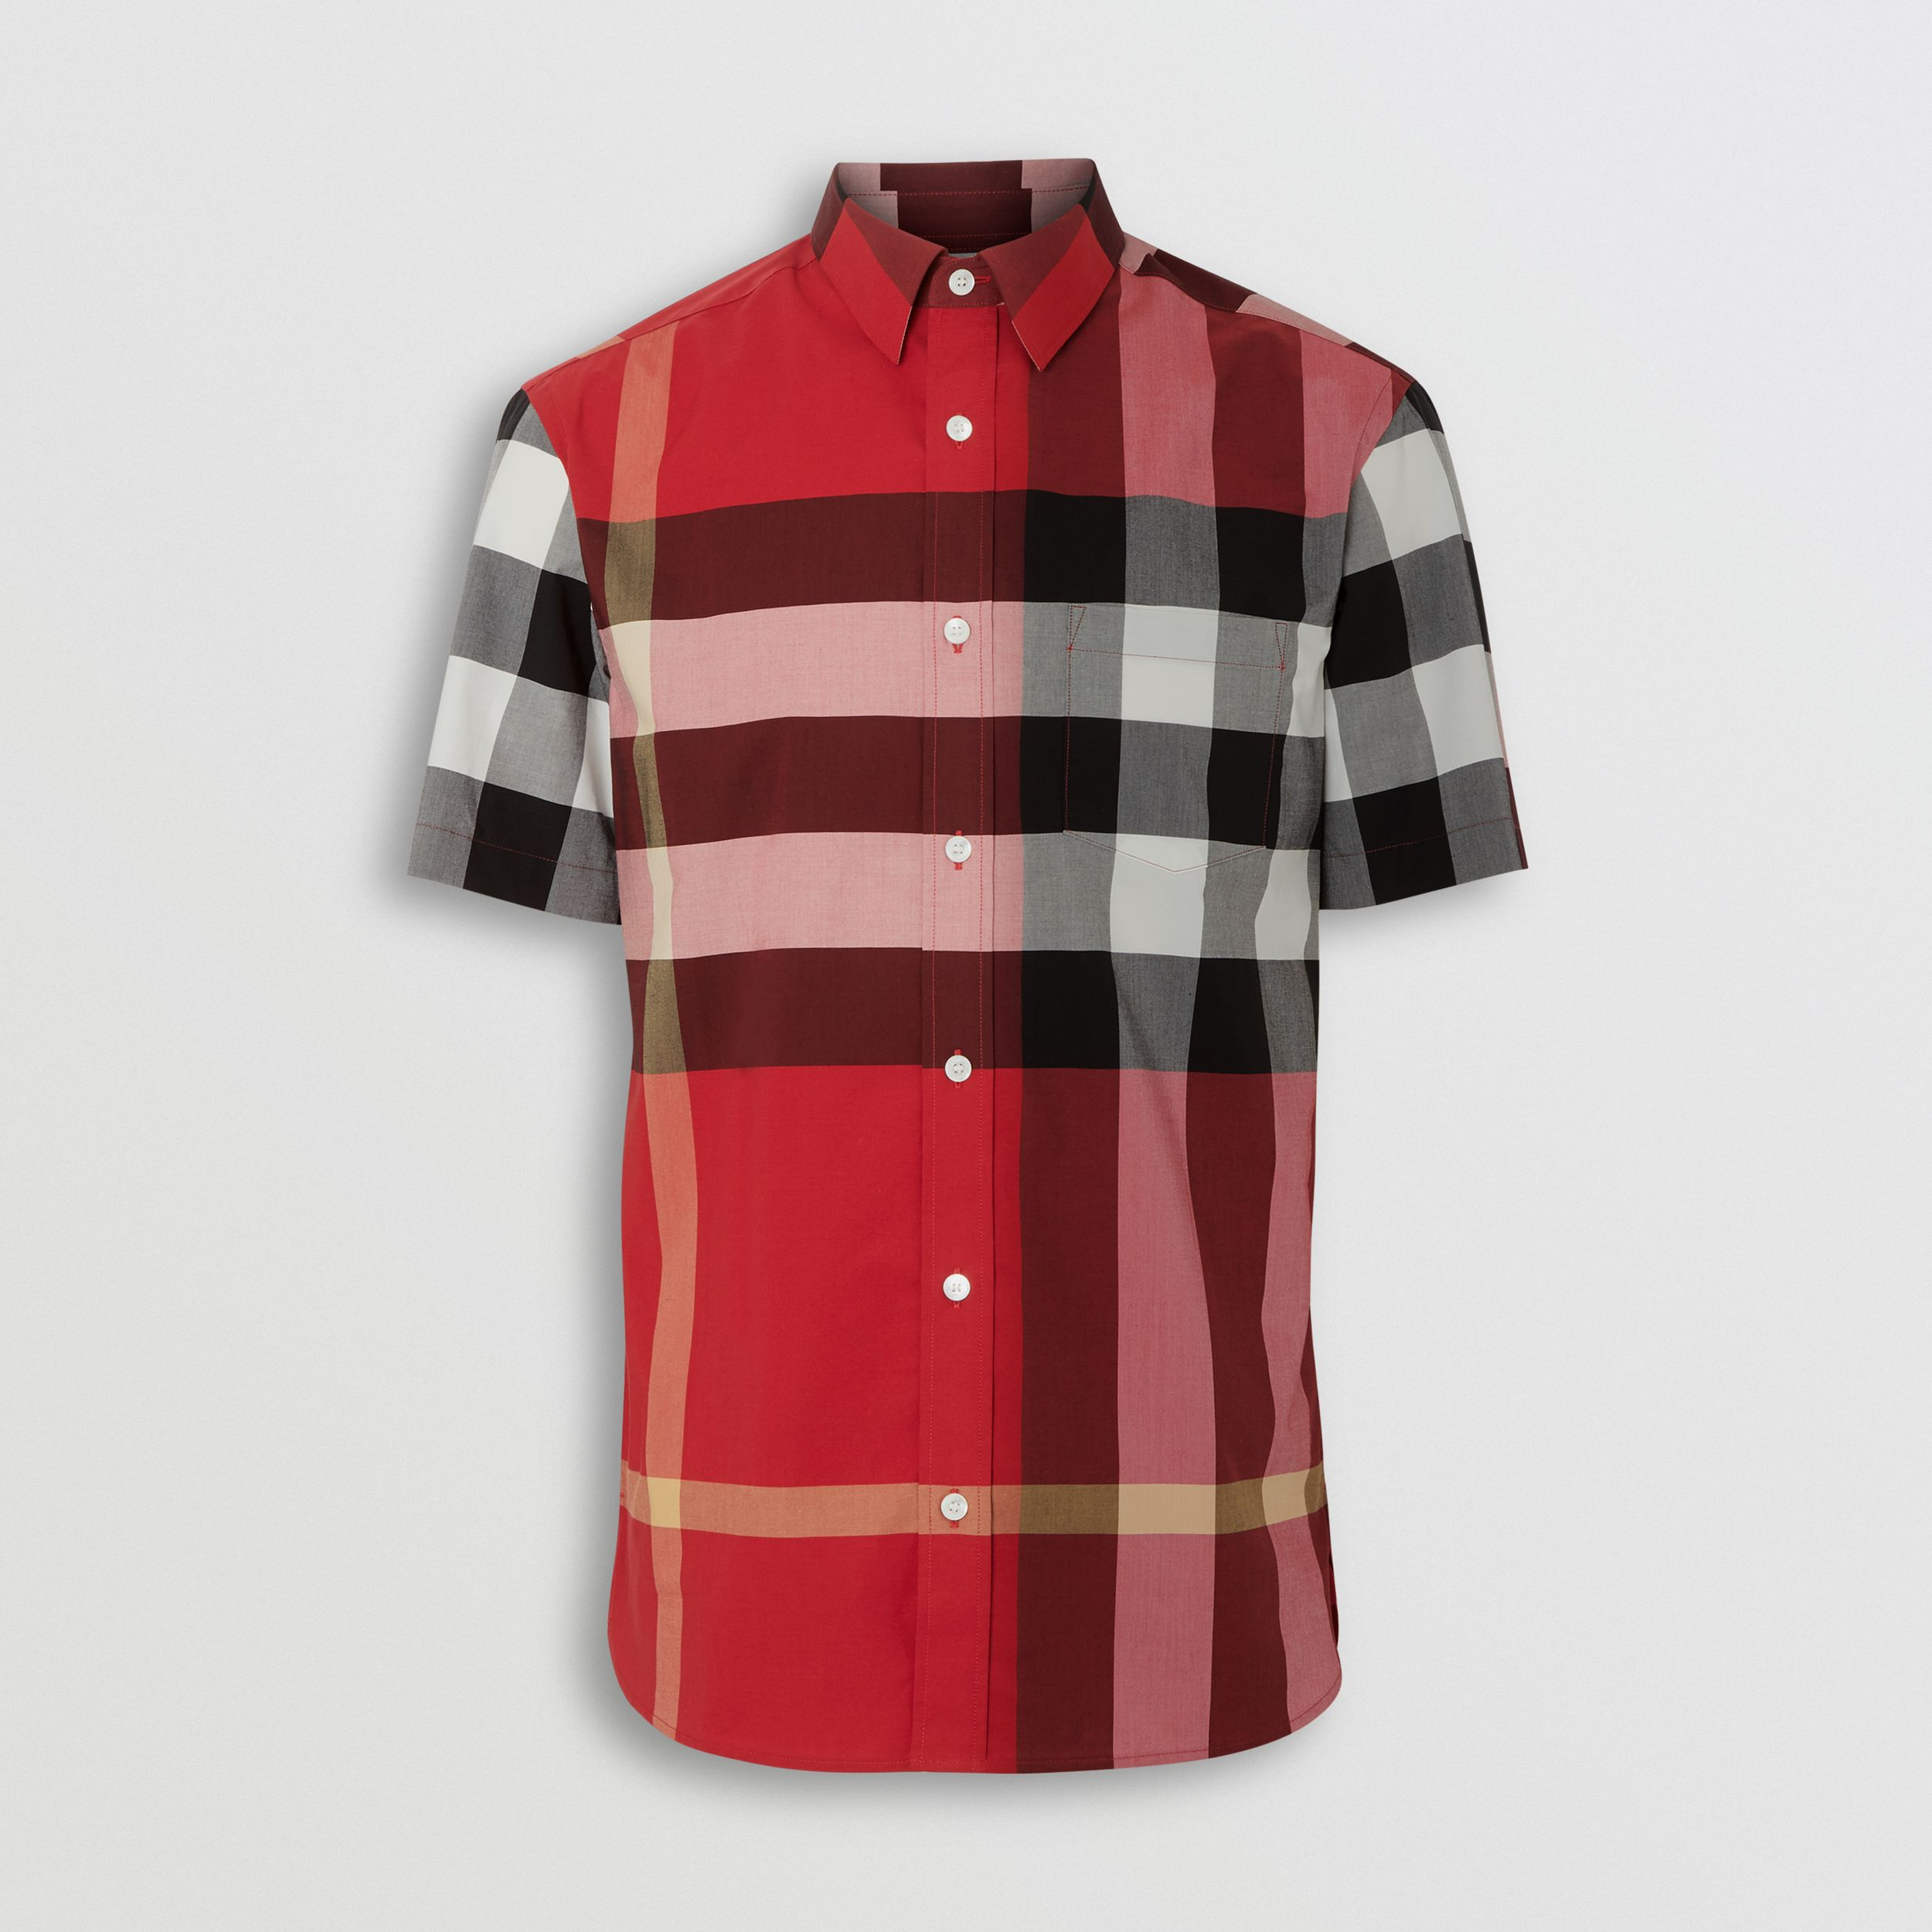 Short-sleeve Check Stretch Cotton Shirt in Parade Red - Men | Burberry - 4